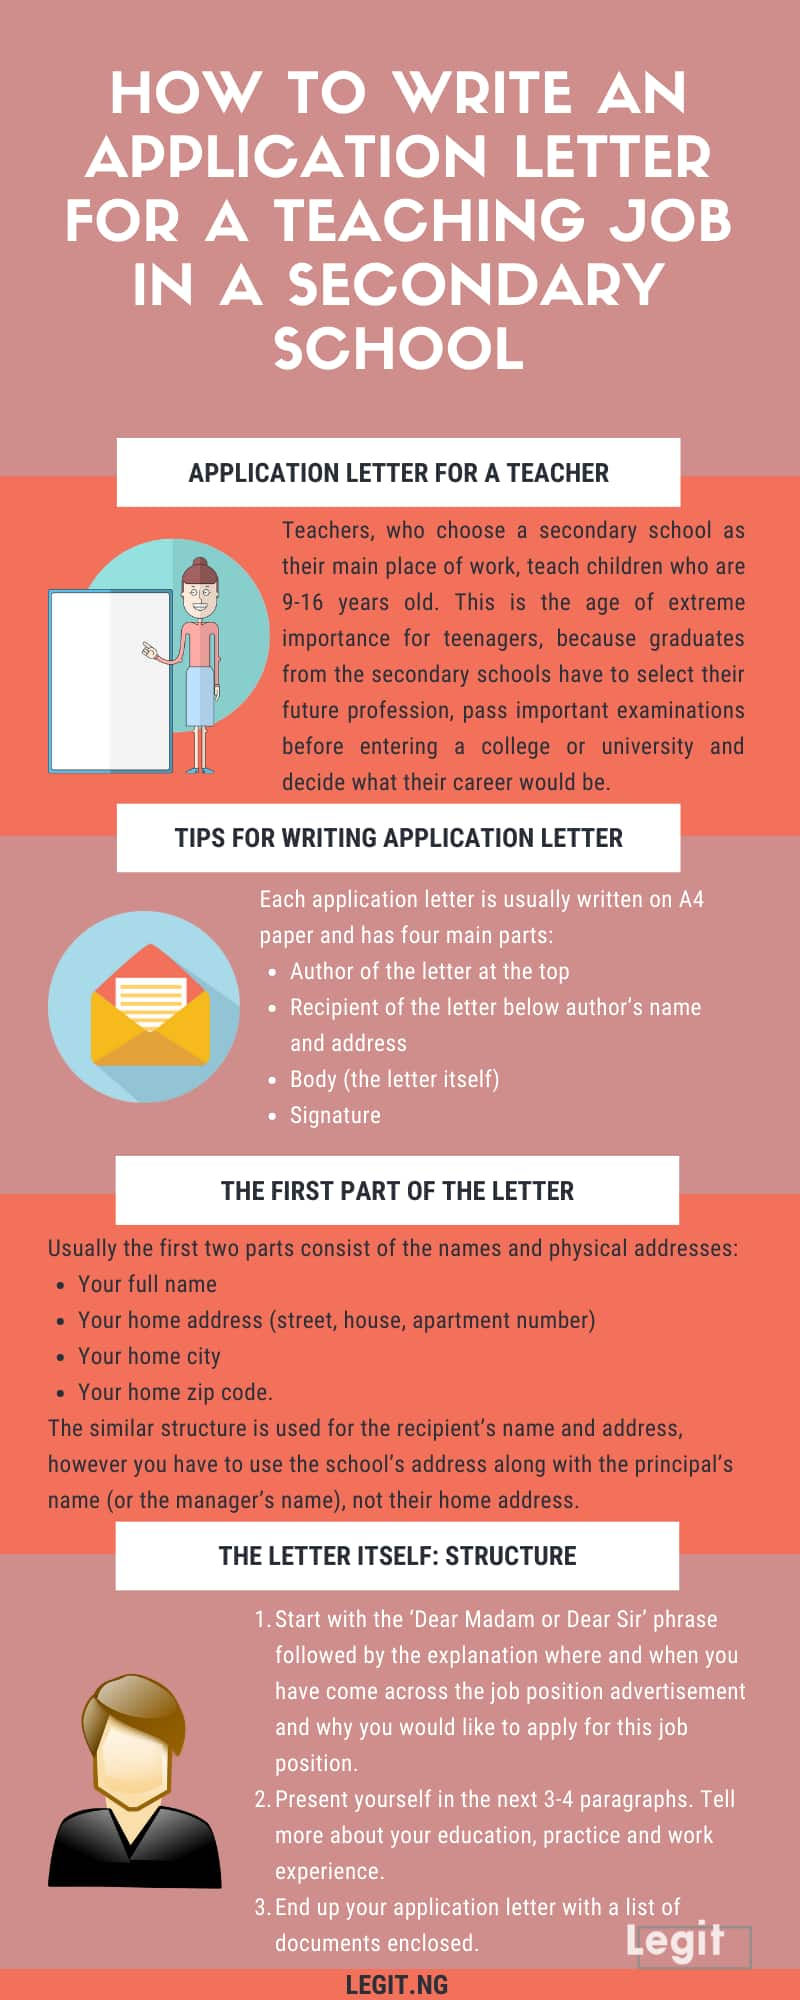 How to write an application letter for a teaching job in a secondary school